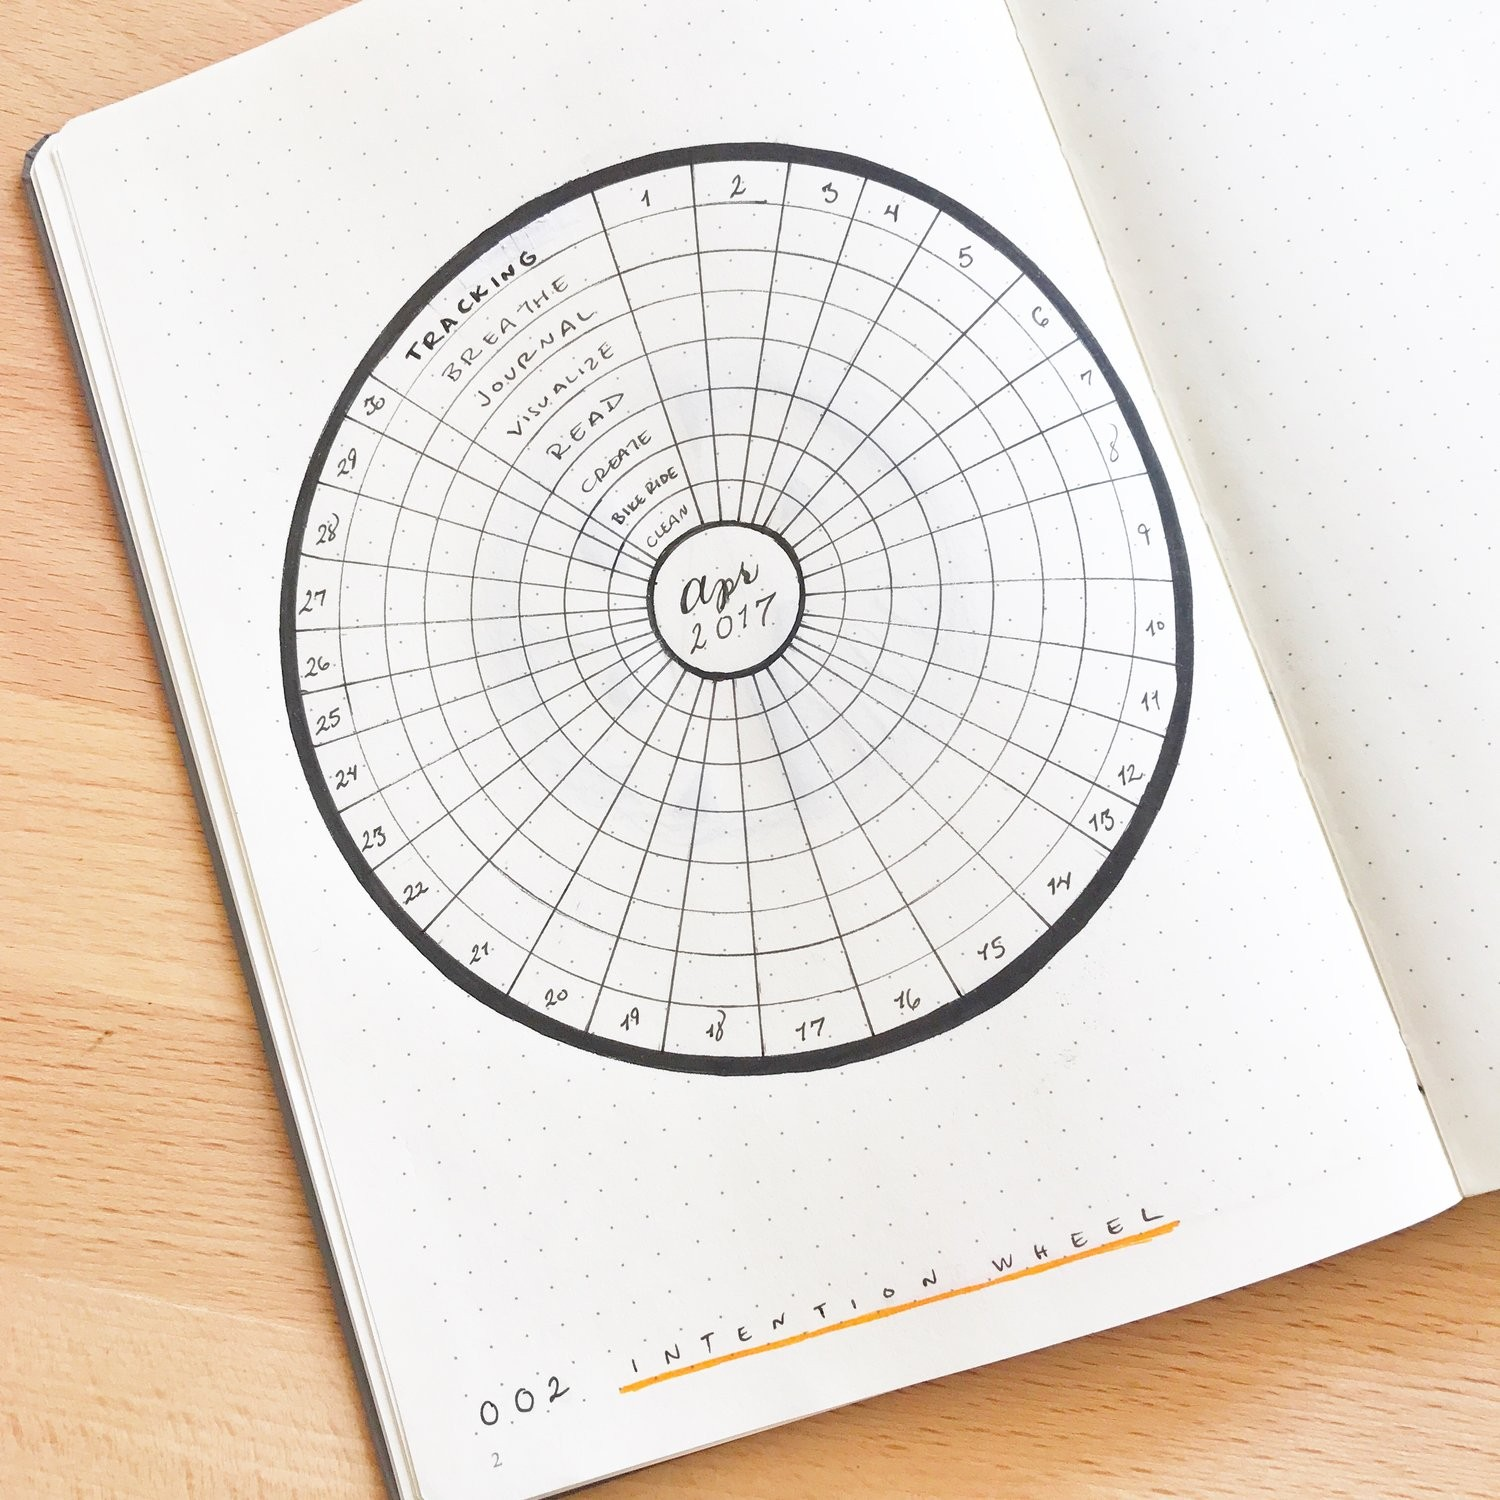 March Calendar Blank 2019 Más Arriba-a-fecha the Intention Wheel A New Kind Of Tracker for Your Bullet Journal Of March Calendar Blank 2019 Más Caliente 2019 March for Life Info